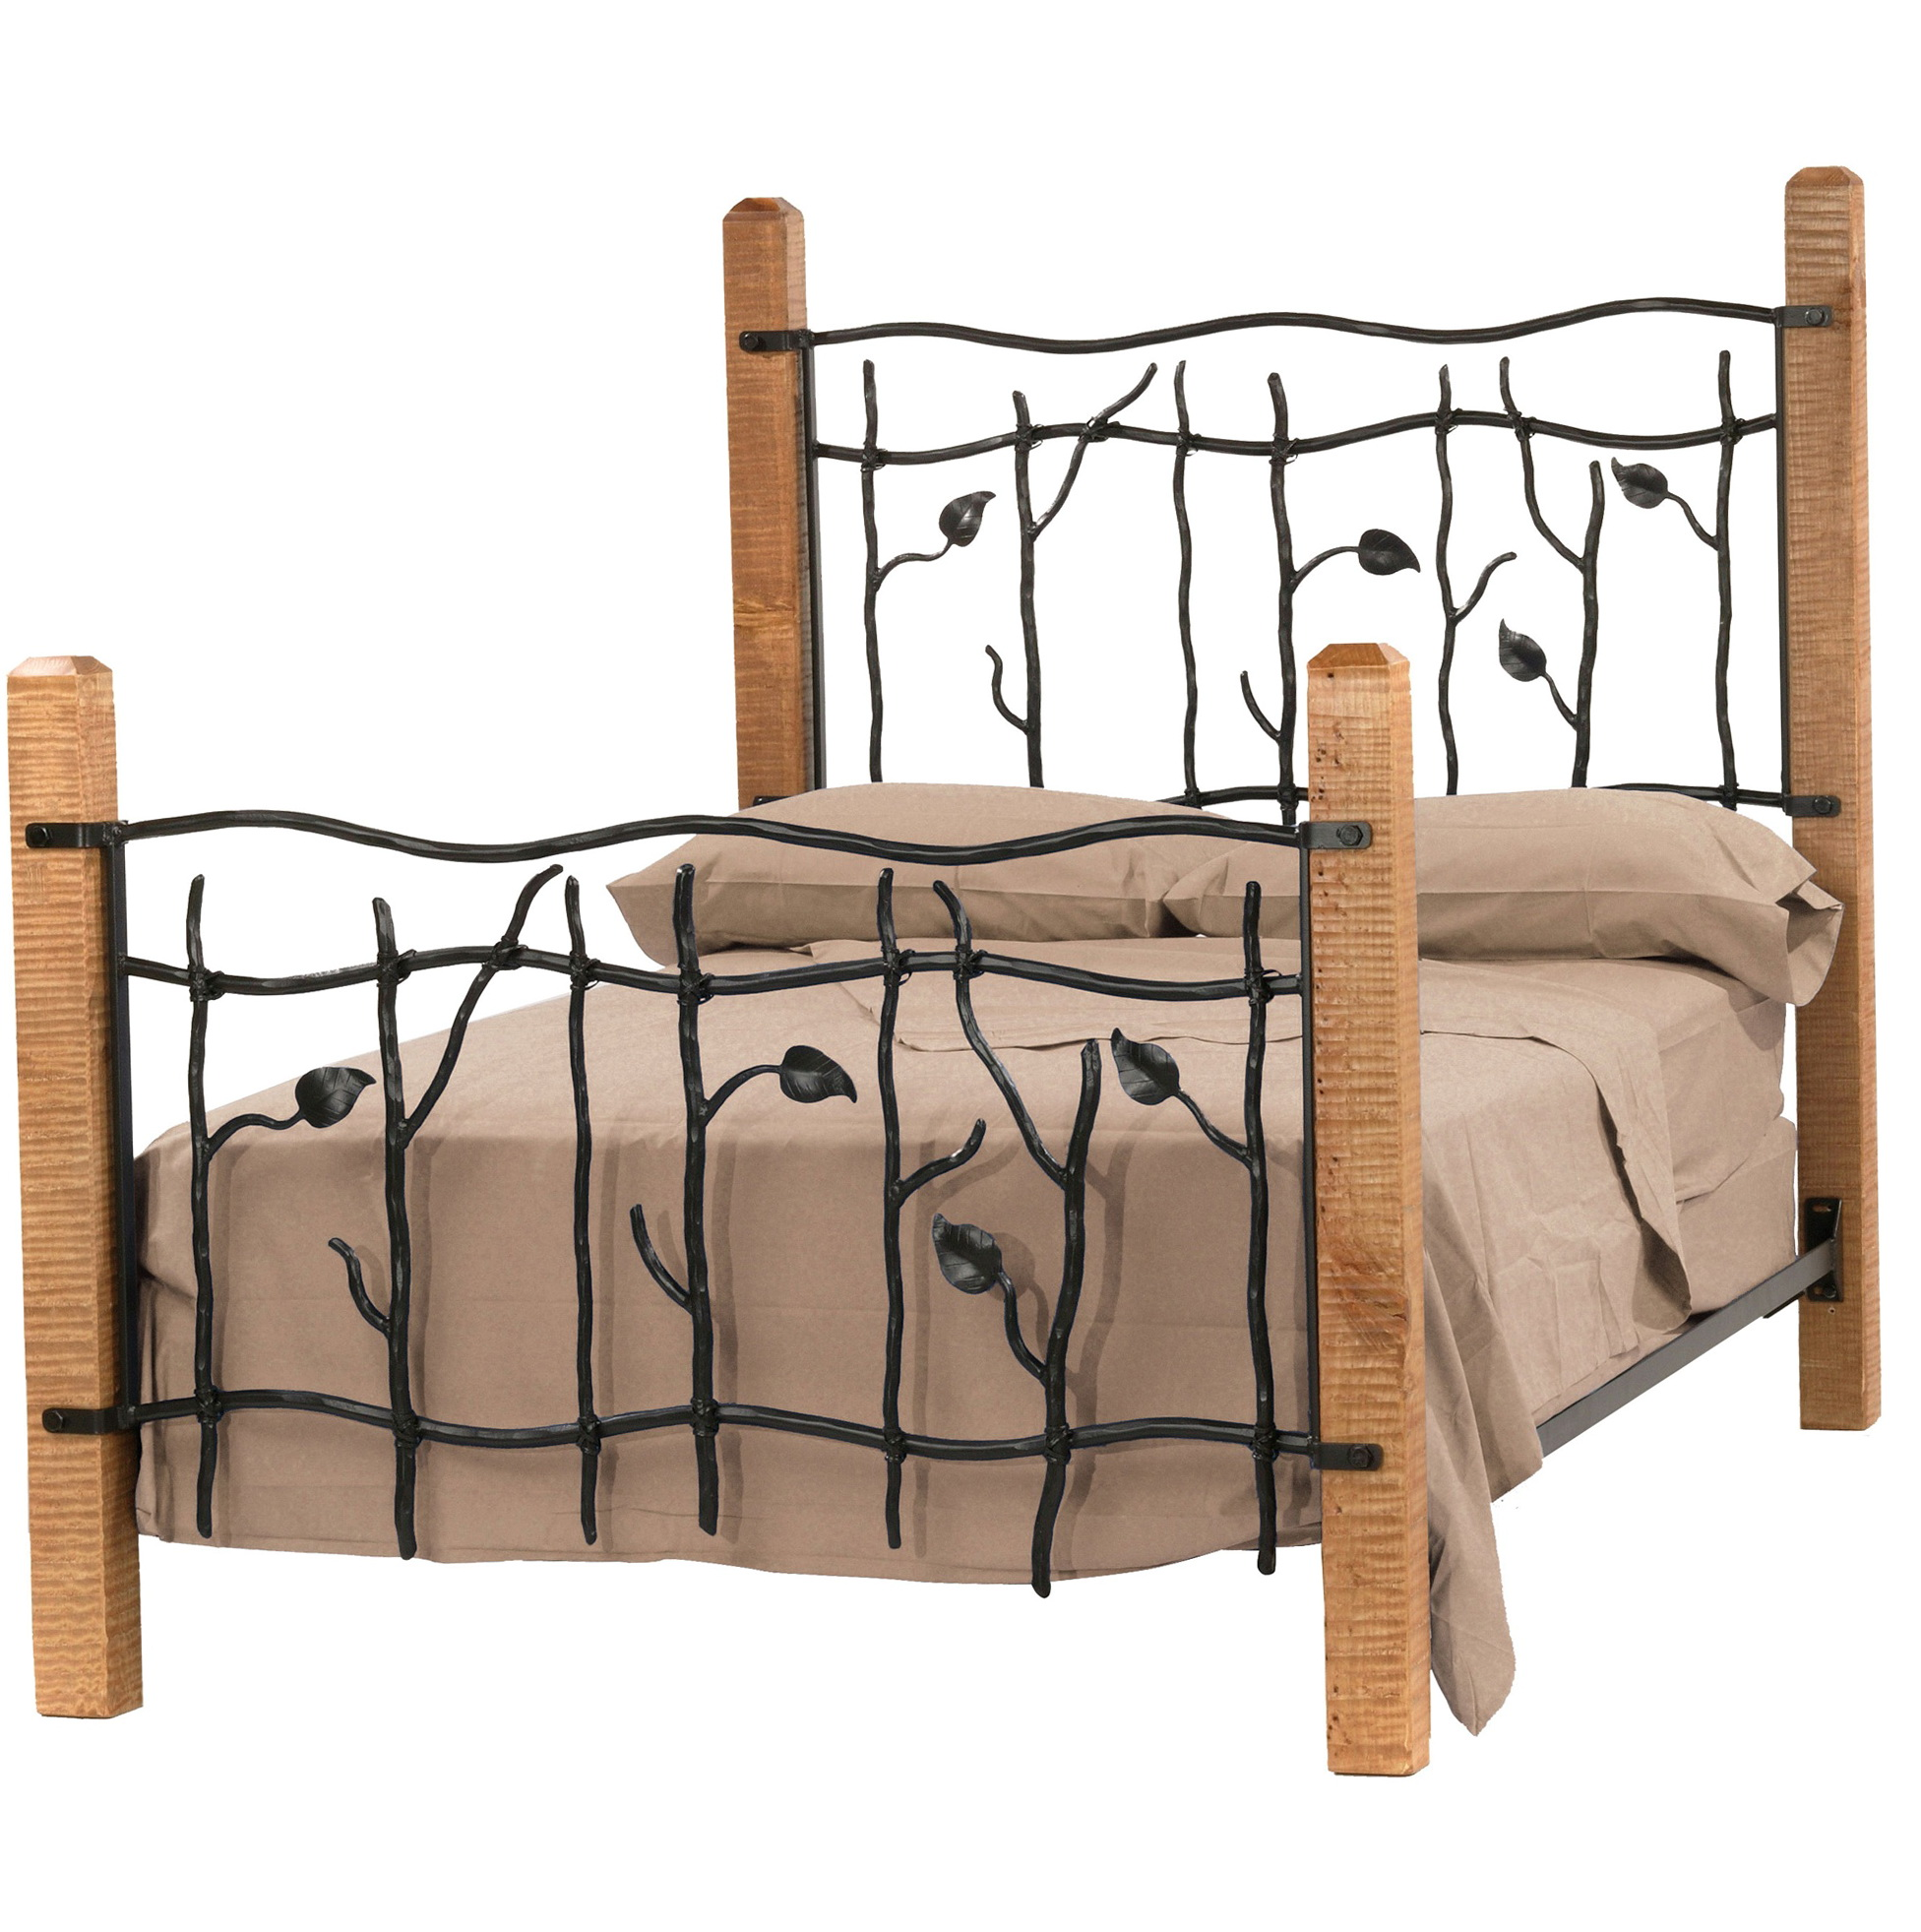 Wrought Iron Bed Frames Full